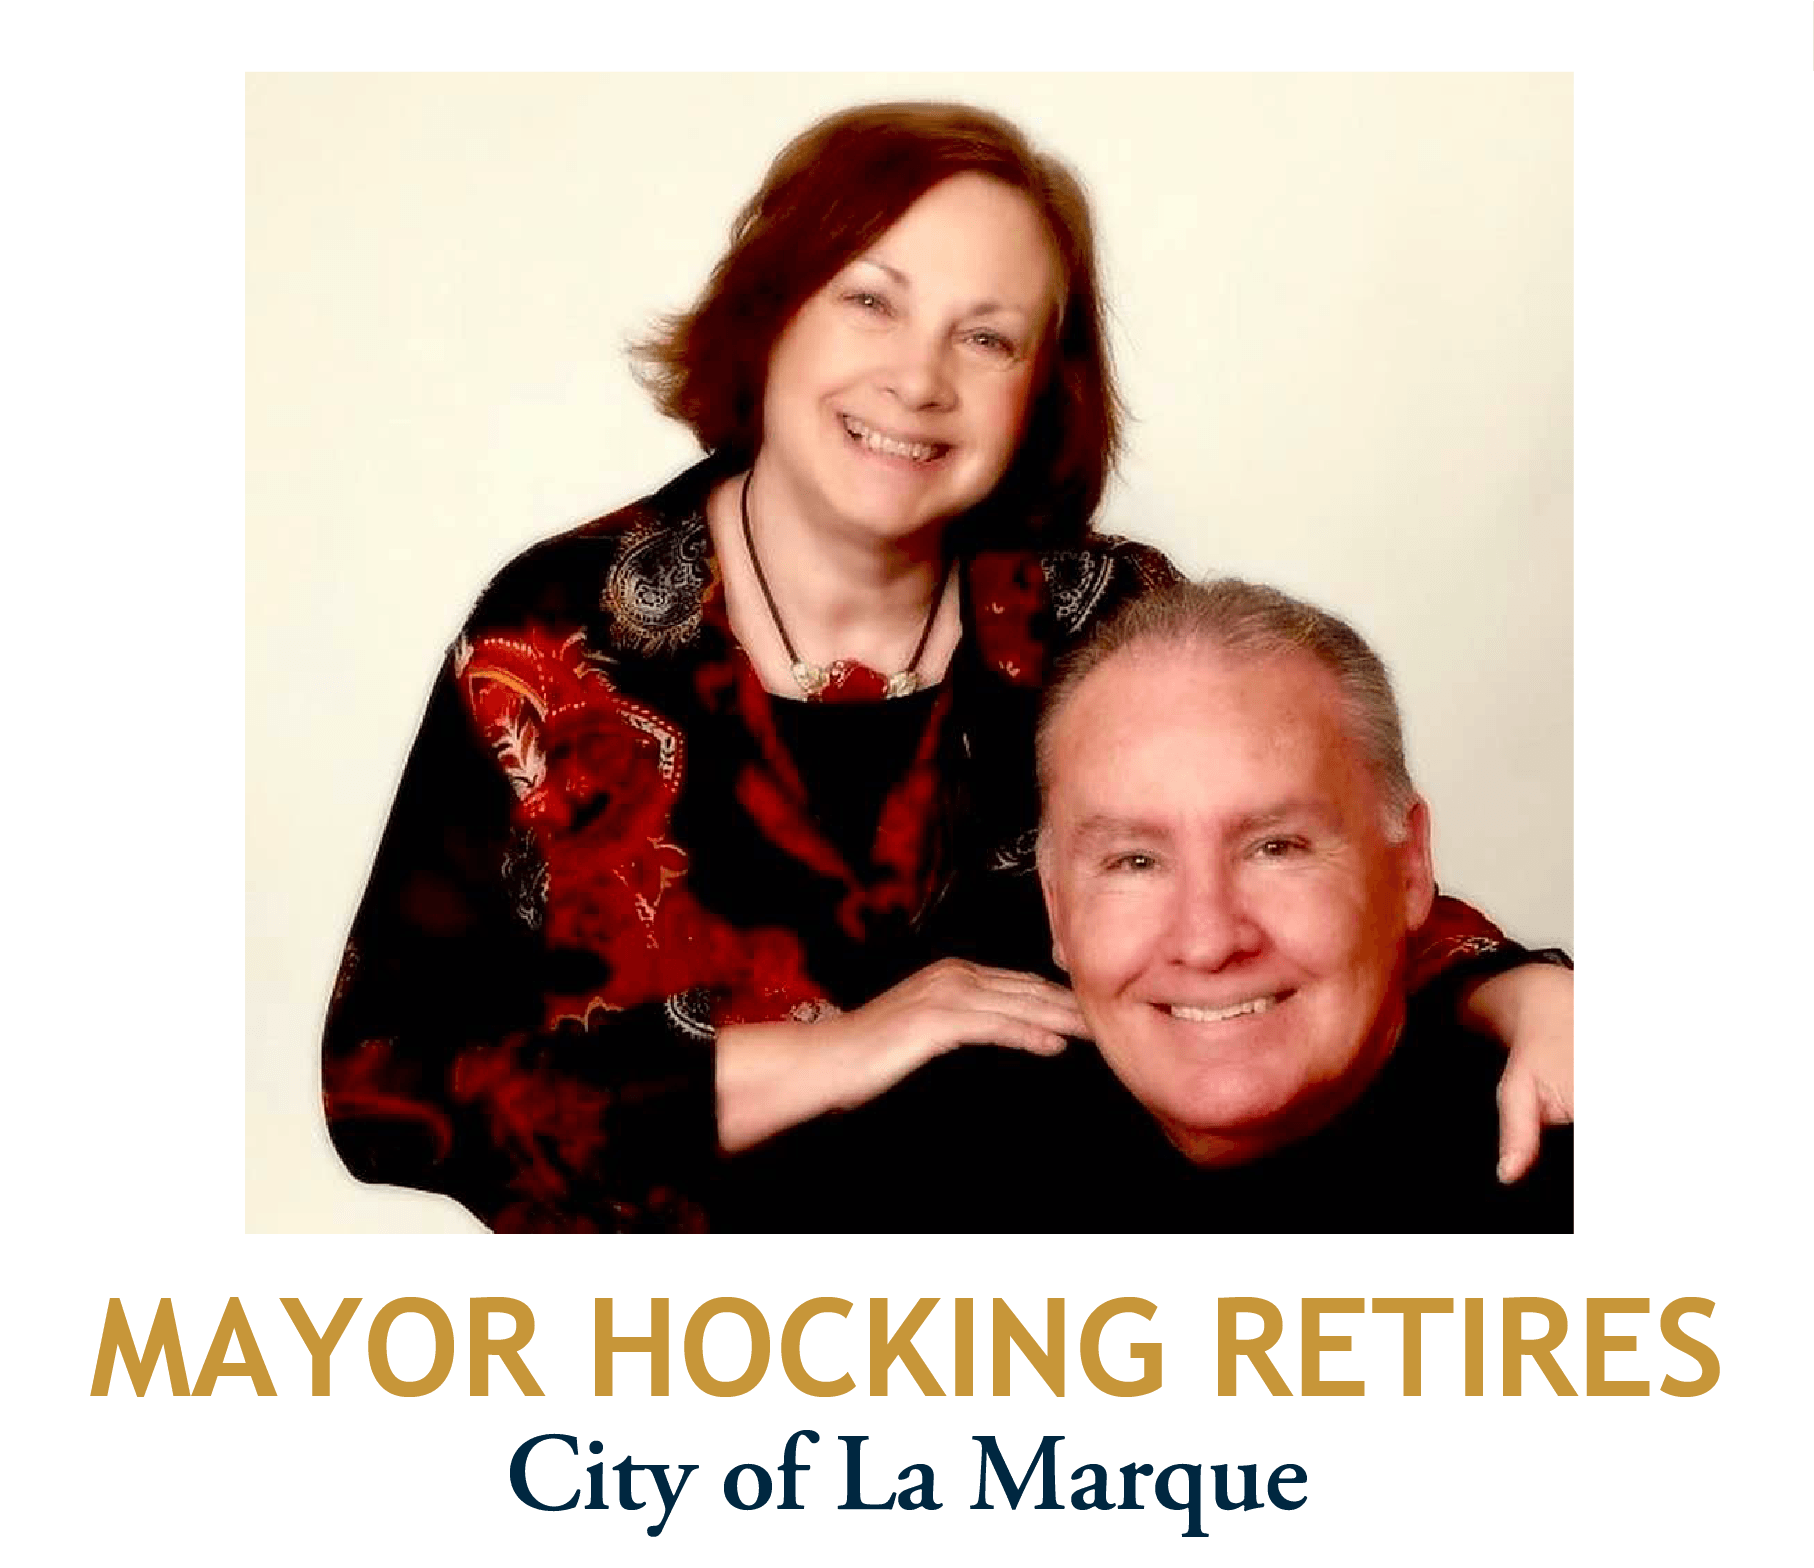 Mayor Hocking Retires